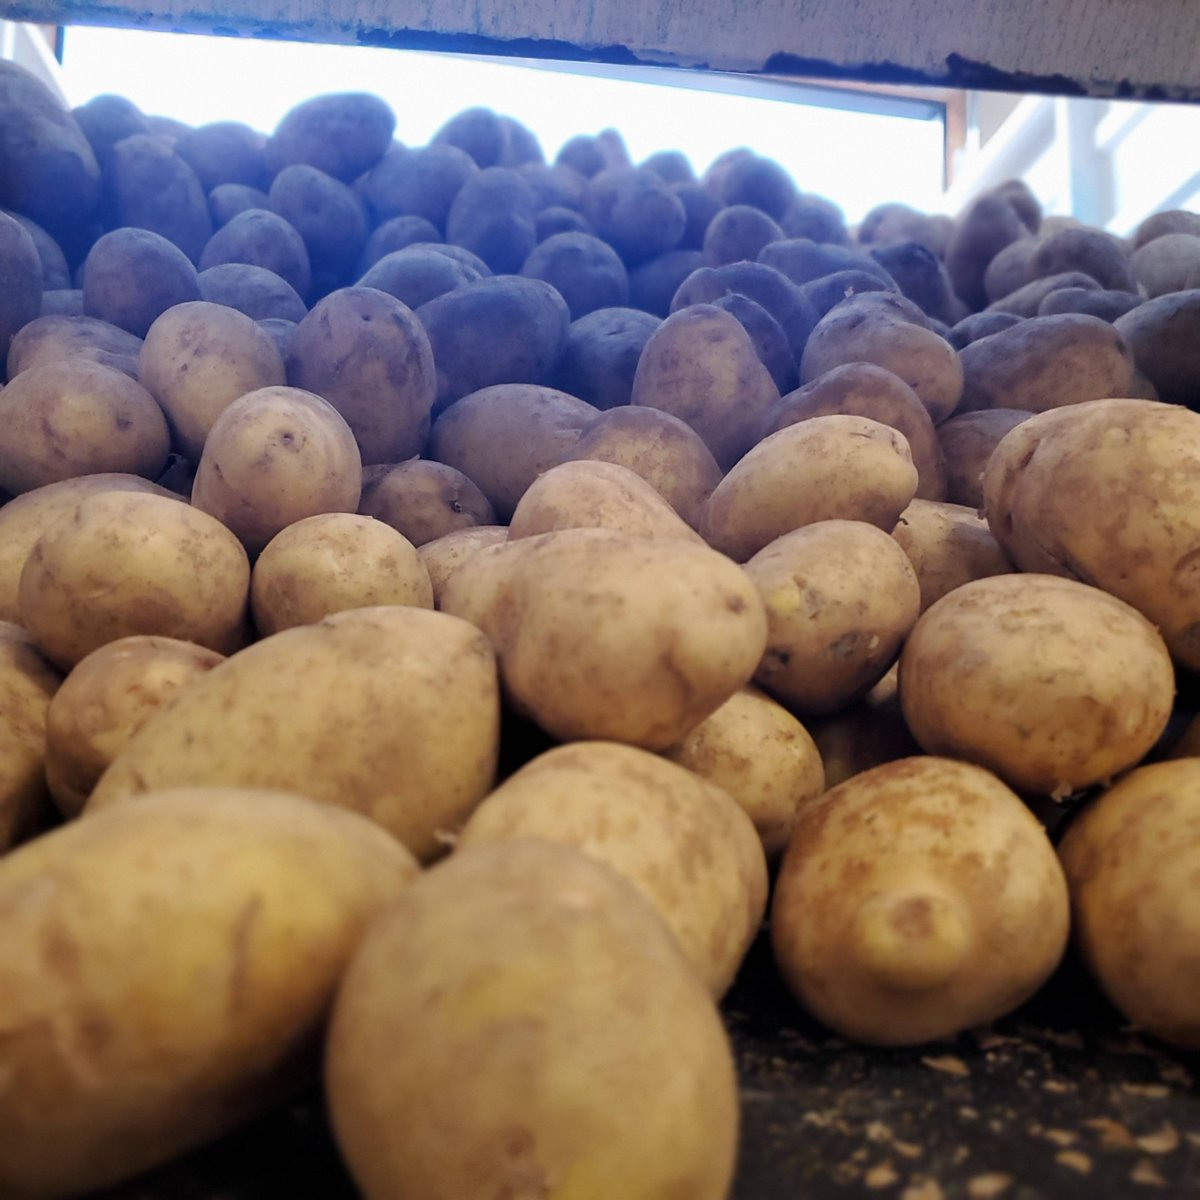 We are another week into potato processing. Did you know that we can go from whole raw potato to vodka in 10 days? And each bottle is roughly 12 pounds of potatoes?  #dryhillsdistillery #montanapotatovodka #knowyourfarmer #knowyourspirits #wegrowgoodtimes https://t.co/p7Izzdg5it